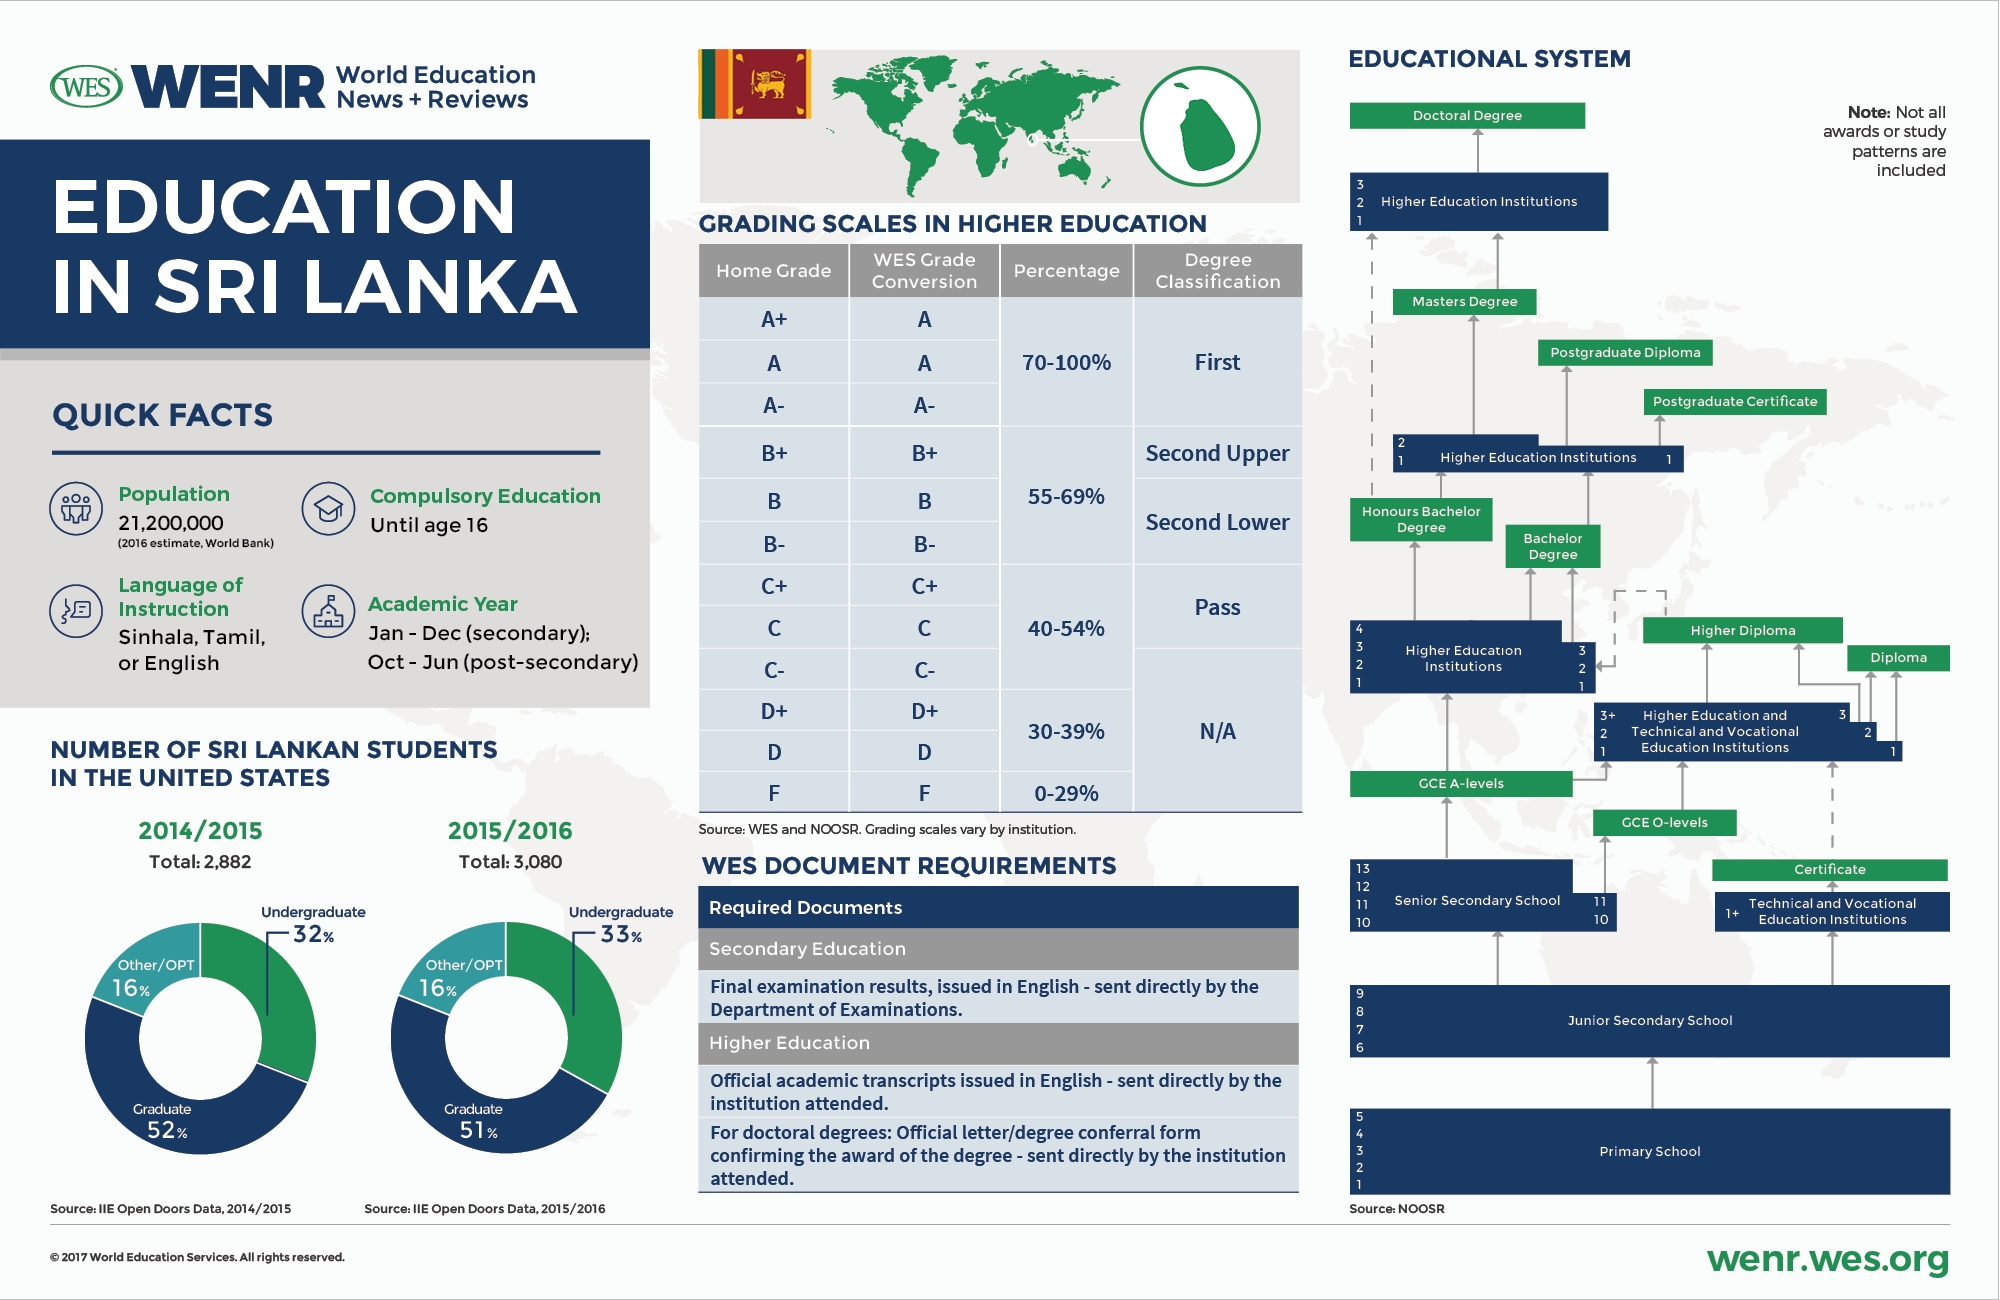 Education In Sri Lanka: Current Trends And Qualifications inside 18 August 1987 In Sri Lanka